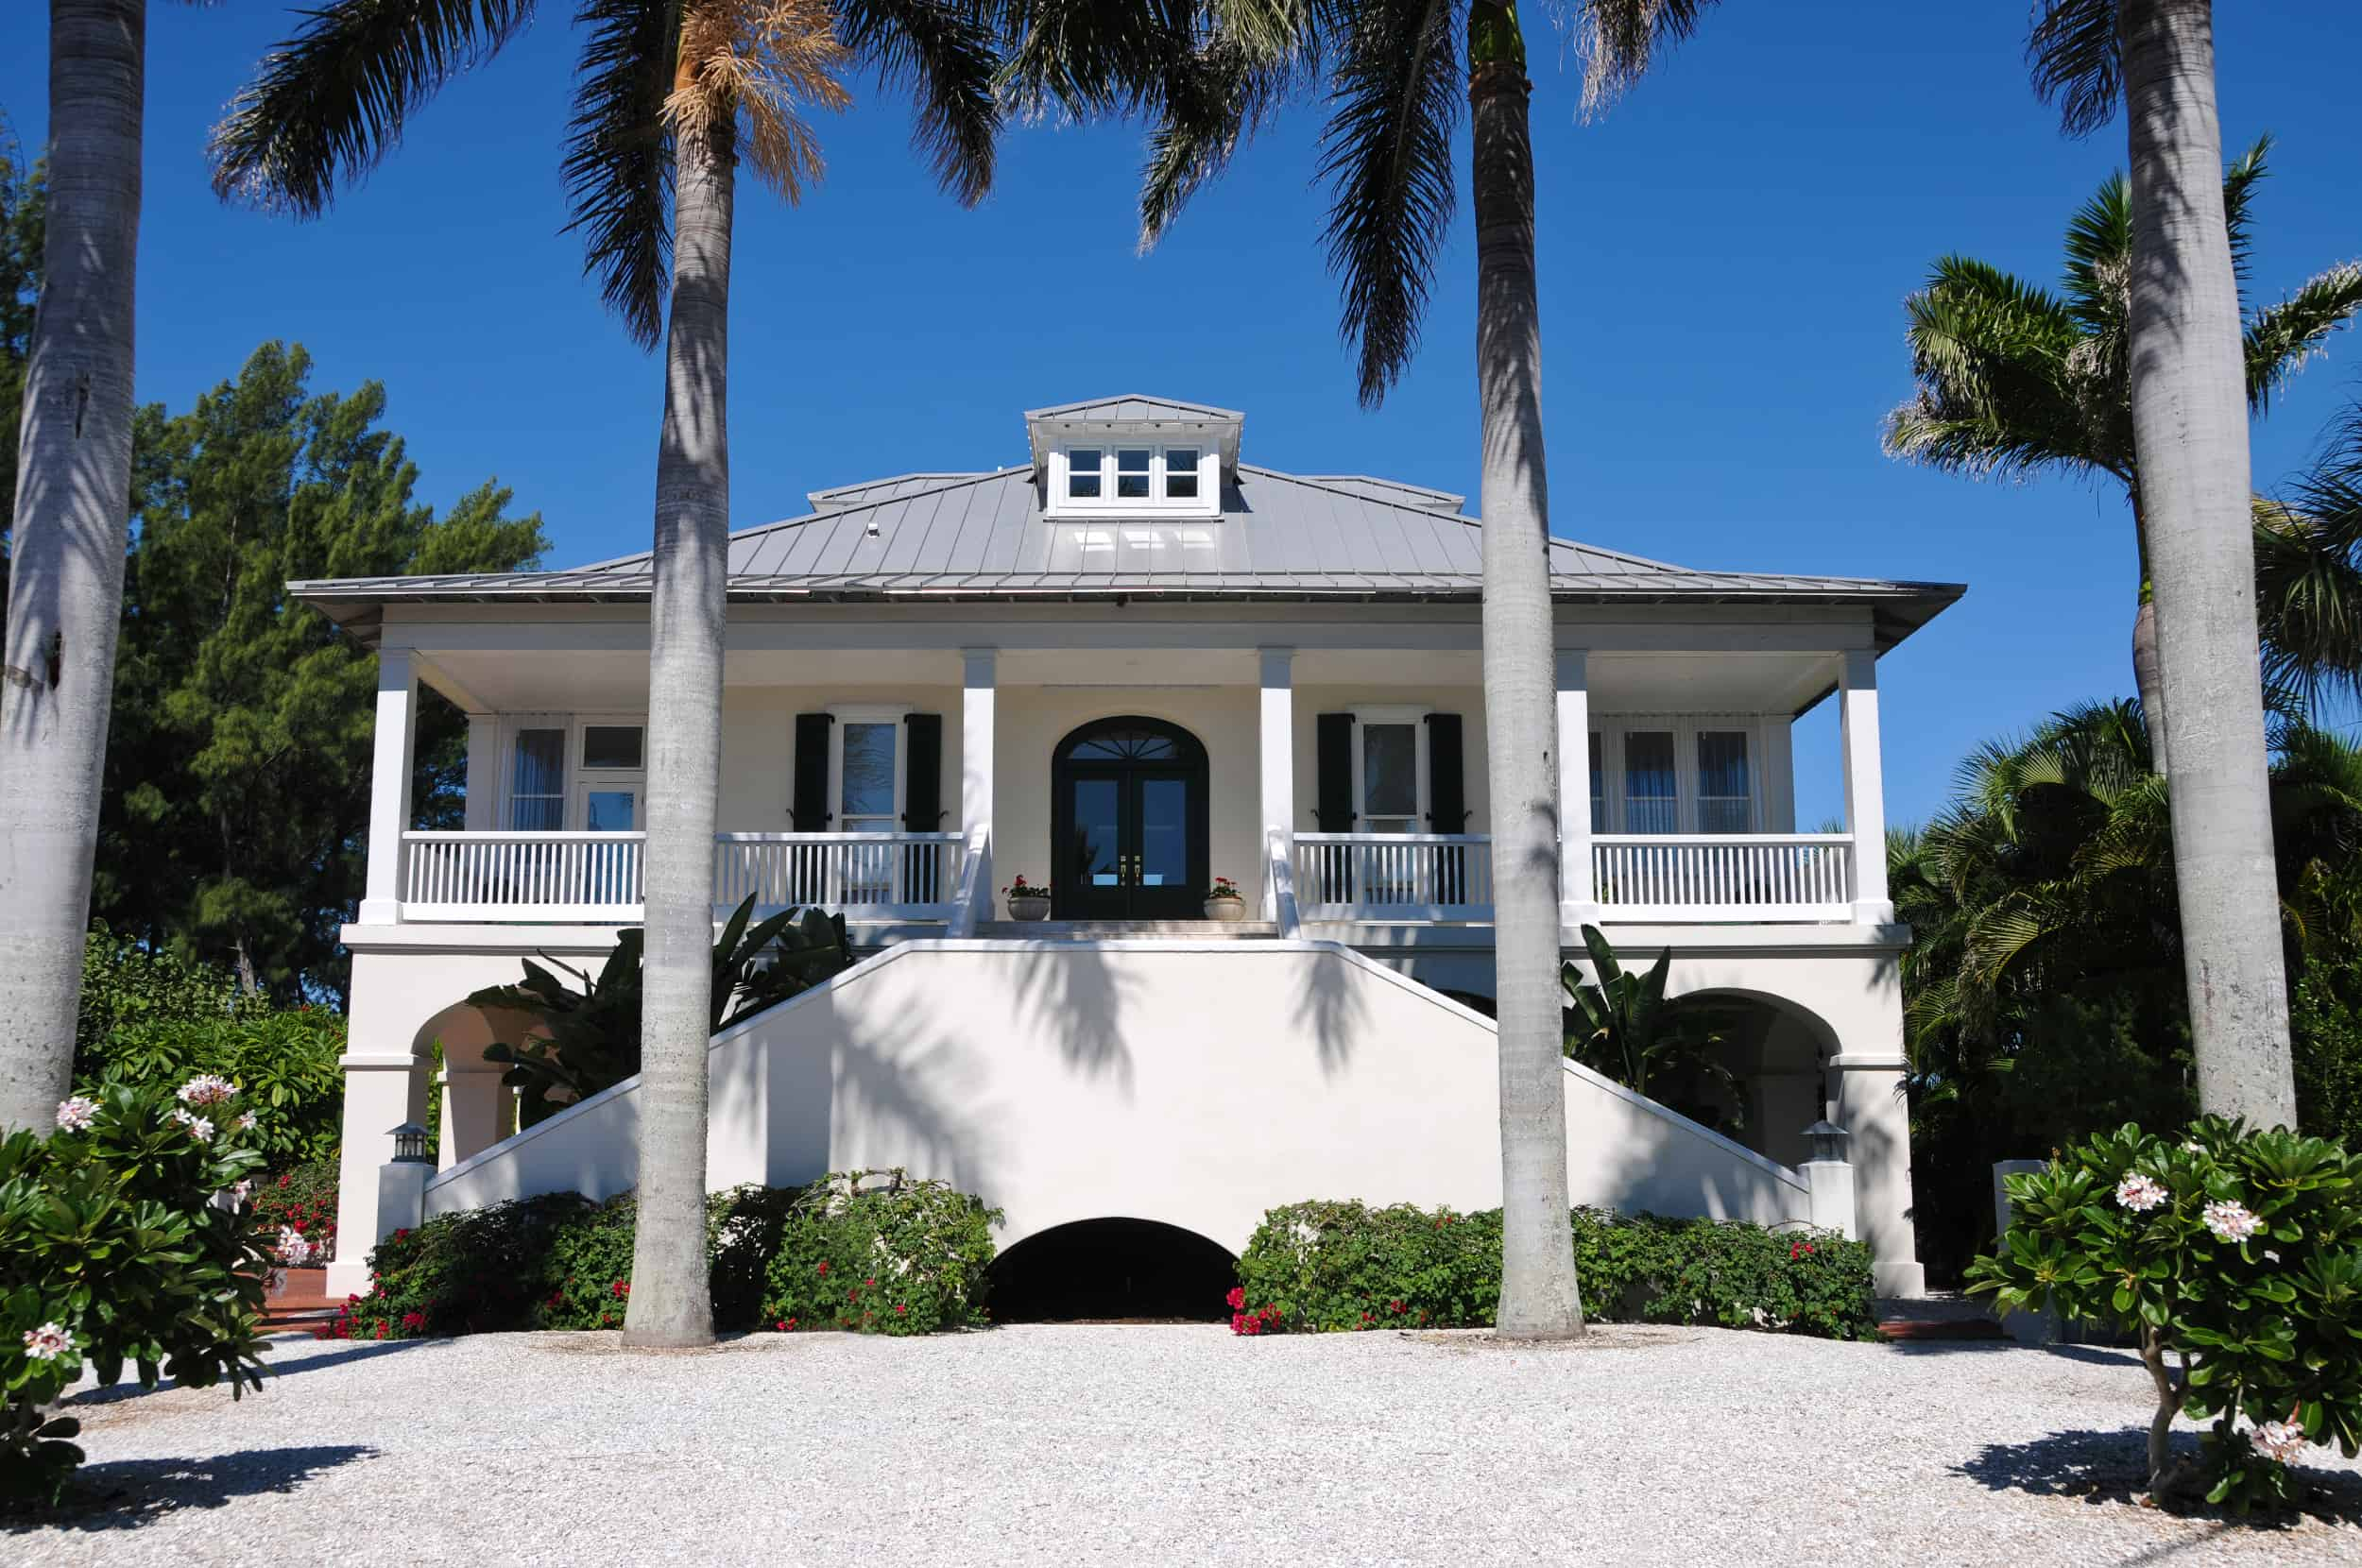 A large white Southern home with columns and palm trees